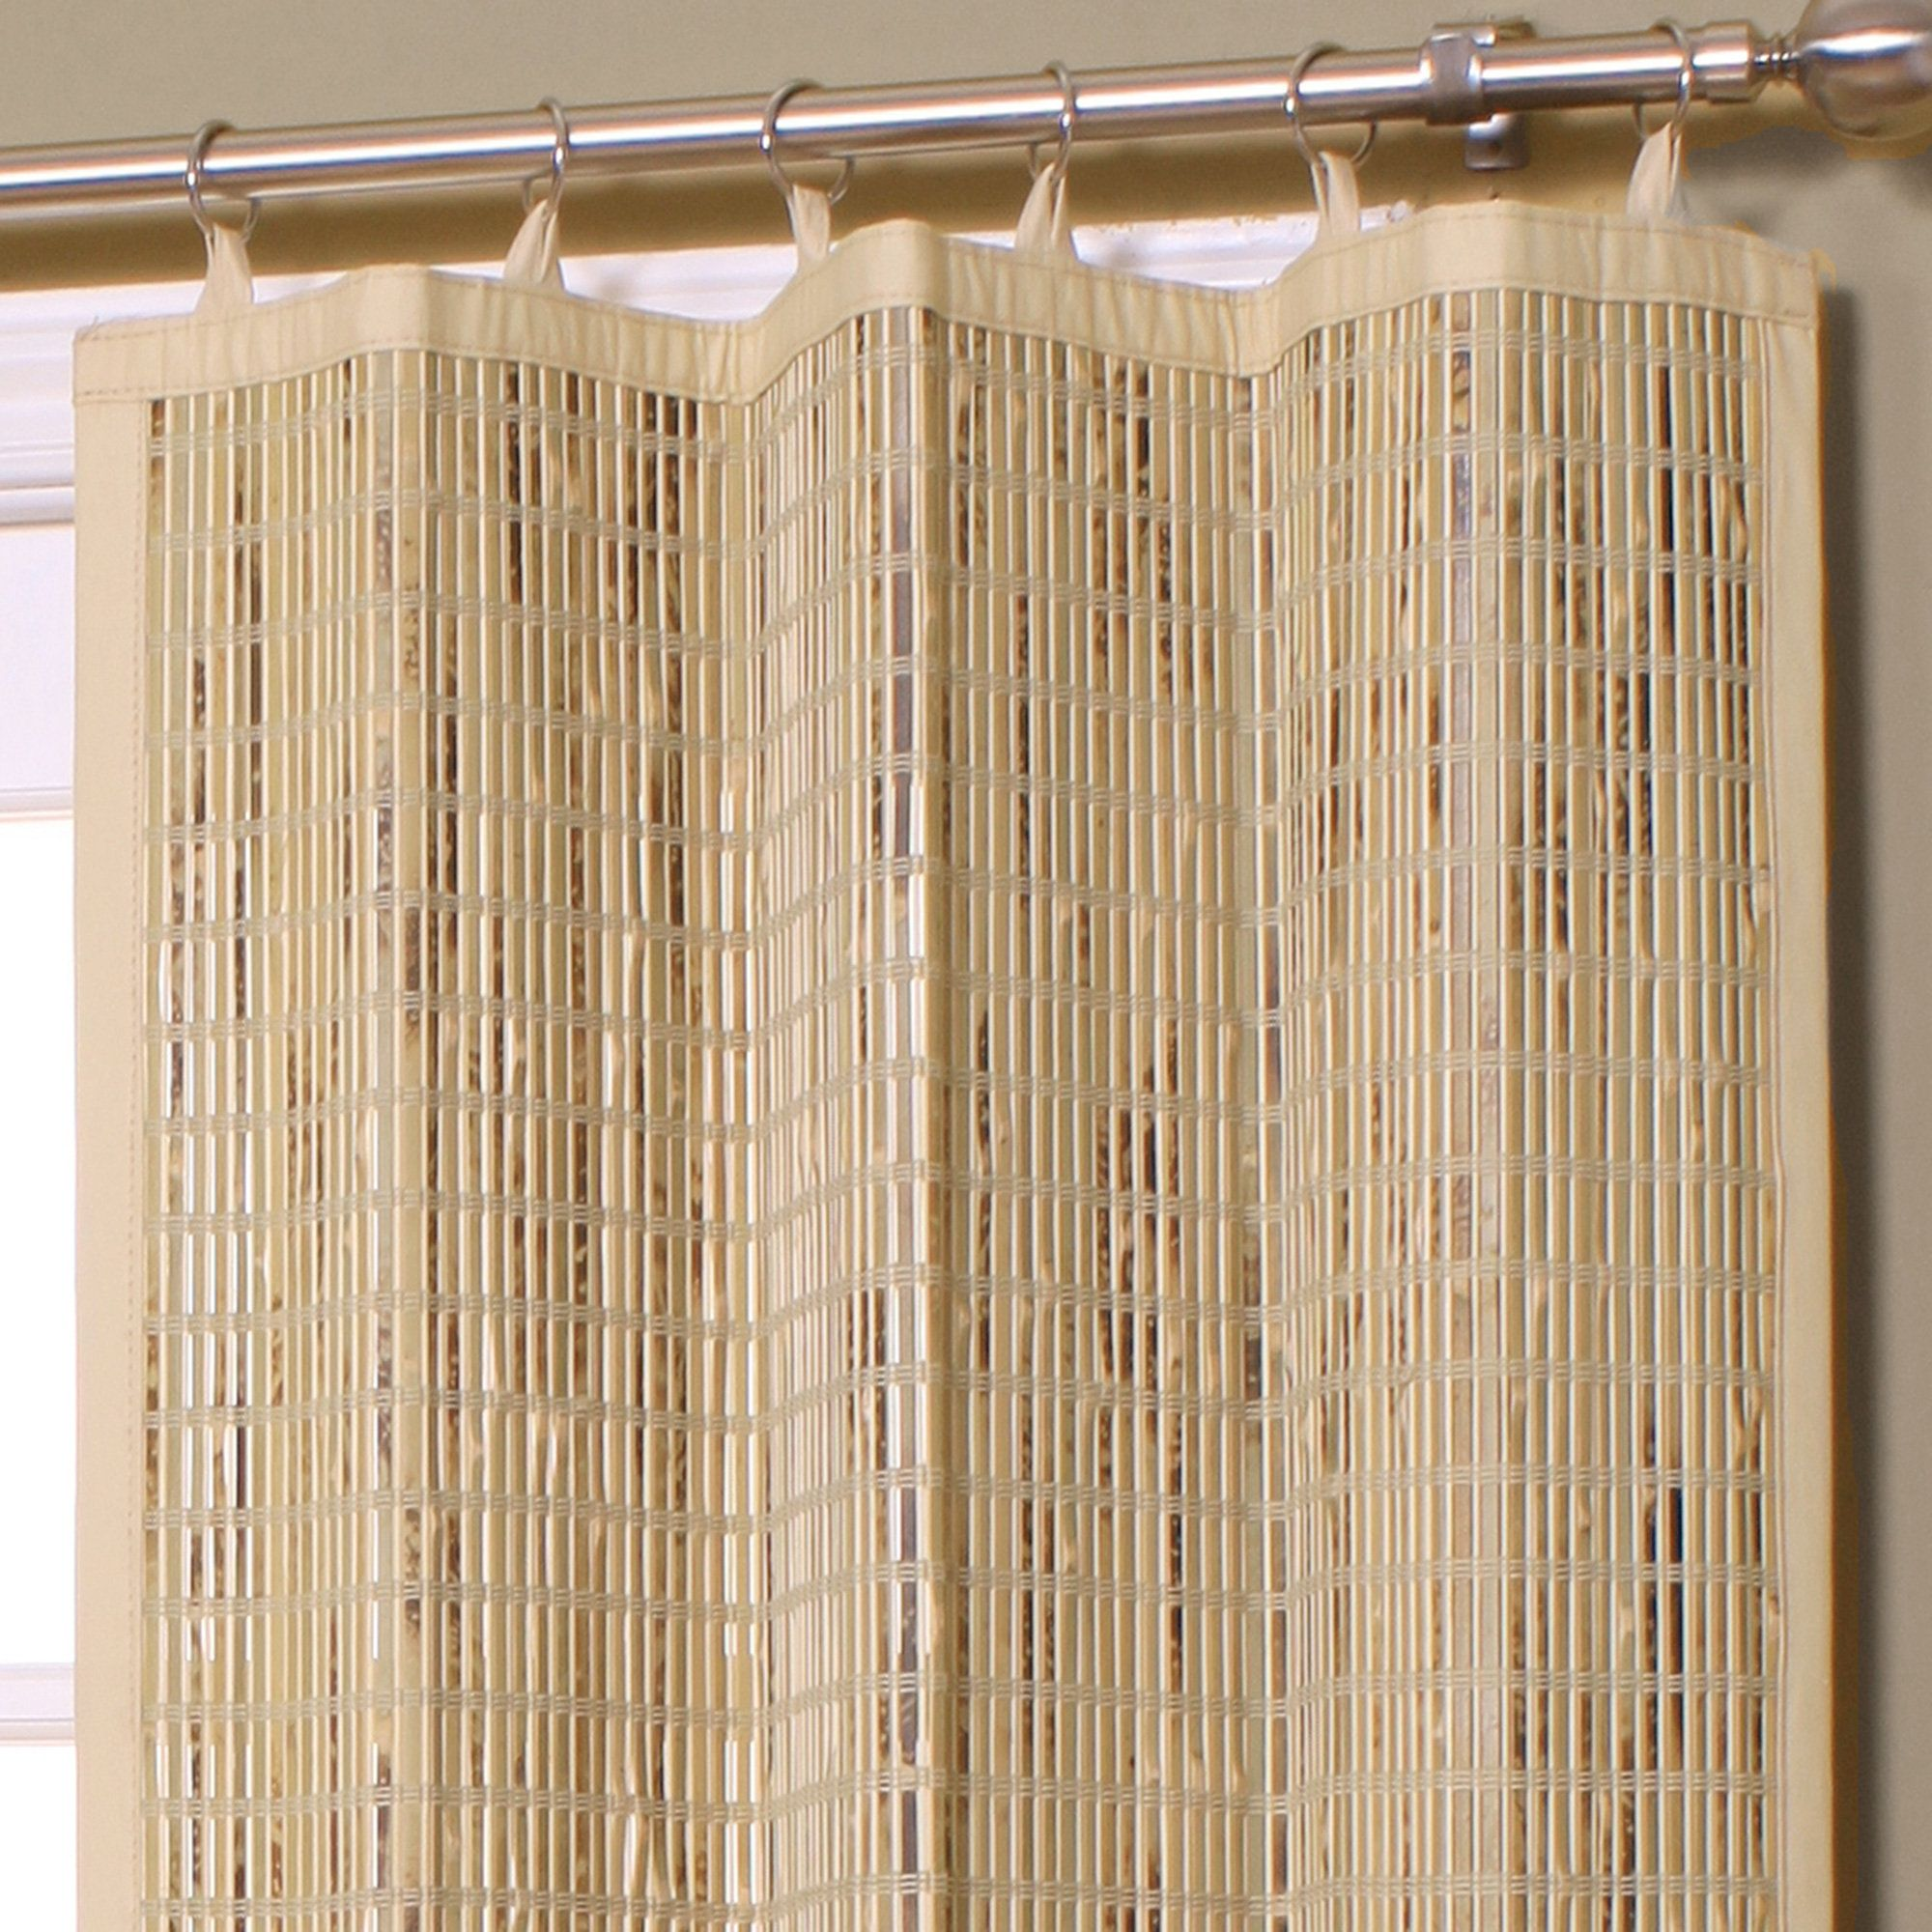 Bamboo Door Curtains Beautiful Accessory And Room Divider Home Trends And Design Temporary Room Dividers Room Divider Curtain Fabric Room Dividers